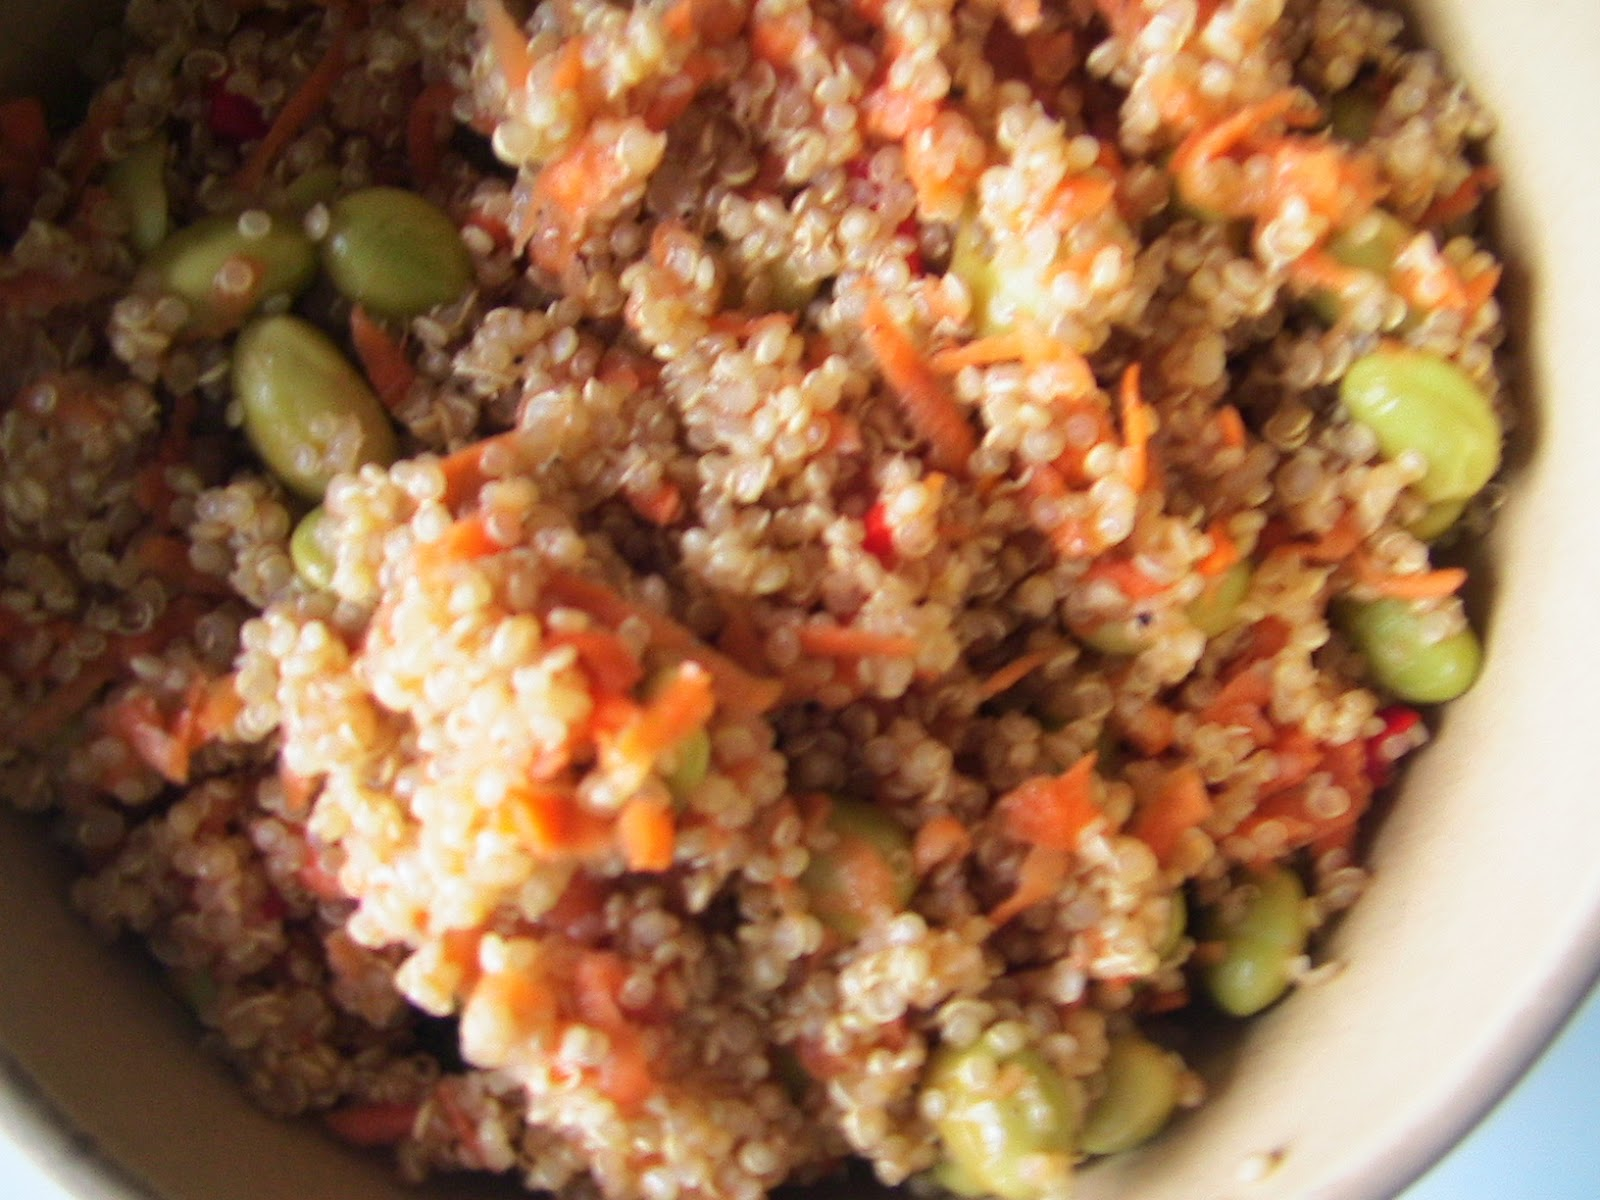 quinoa salad with edamame, grated carrot, and pomegranate dressing